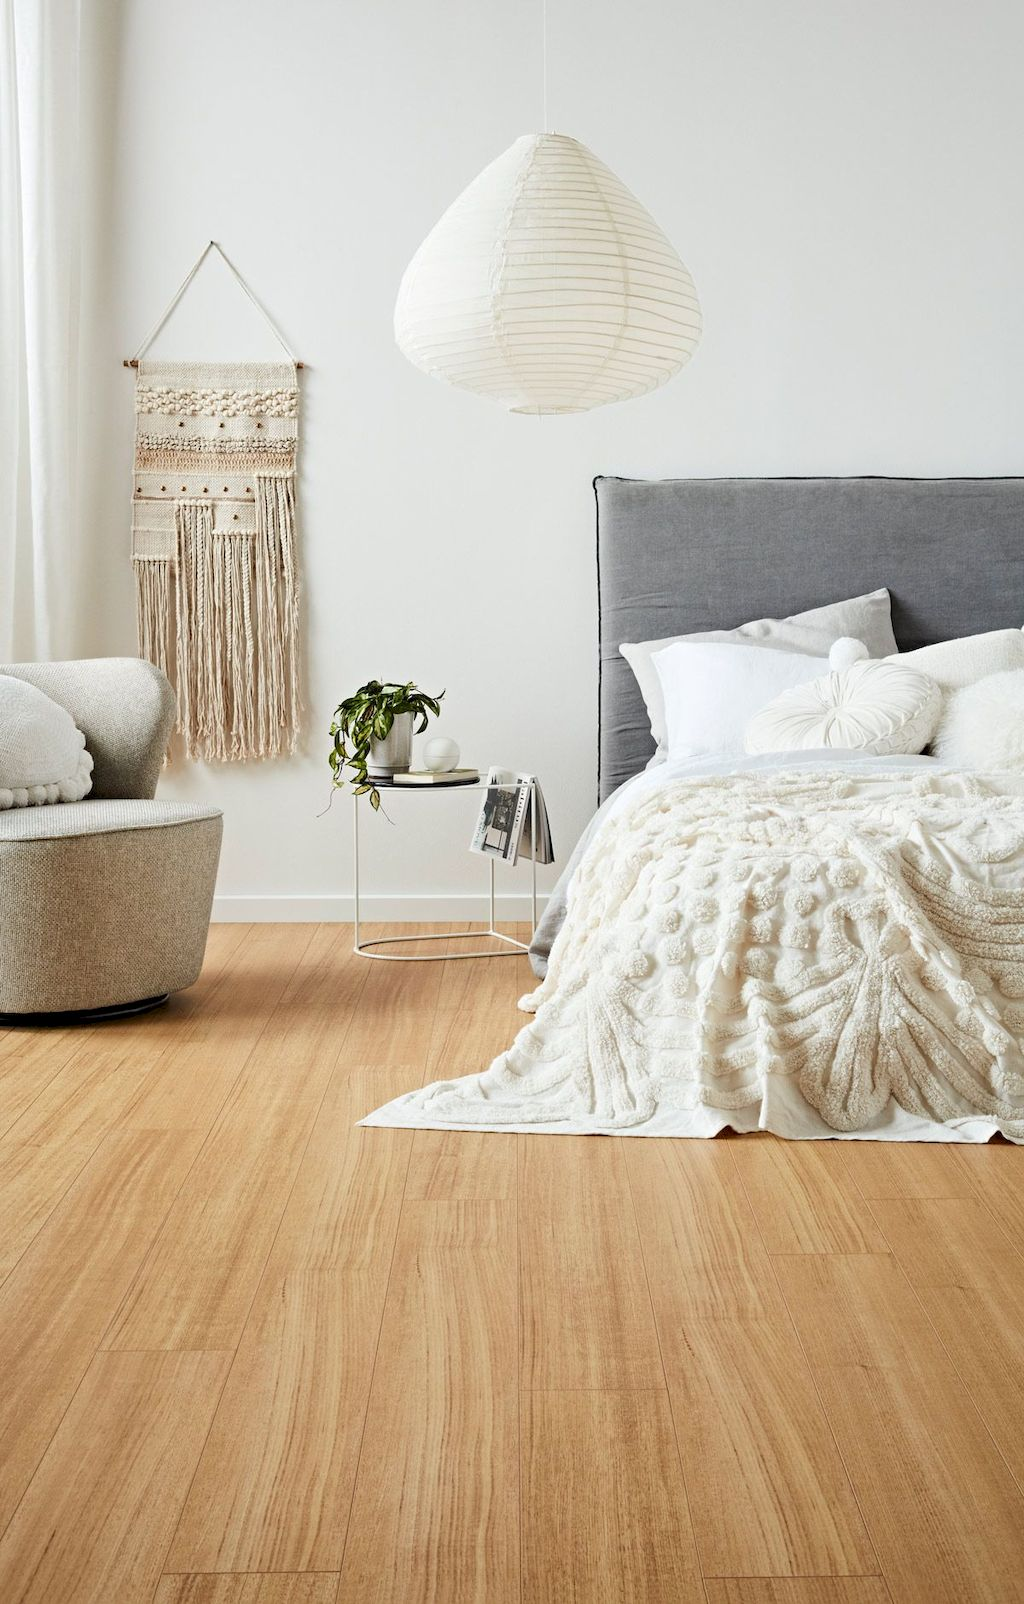 Inspiring Wooden Floor Ideas with Light Wood Tone Part 3